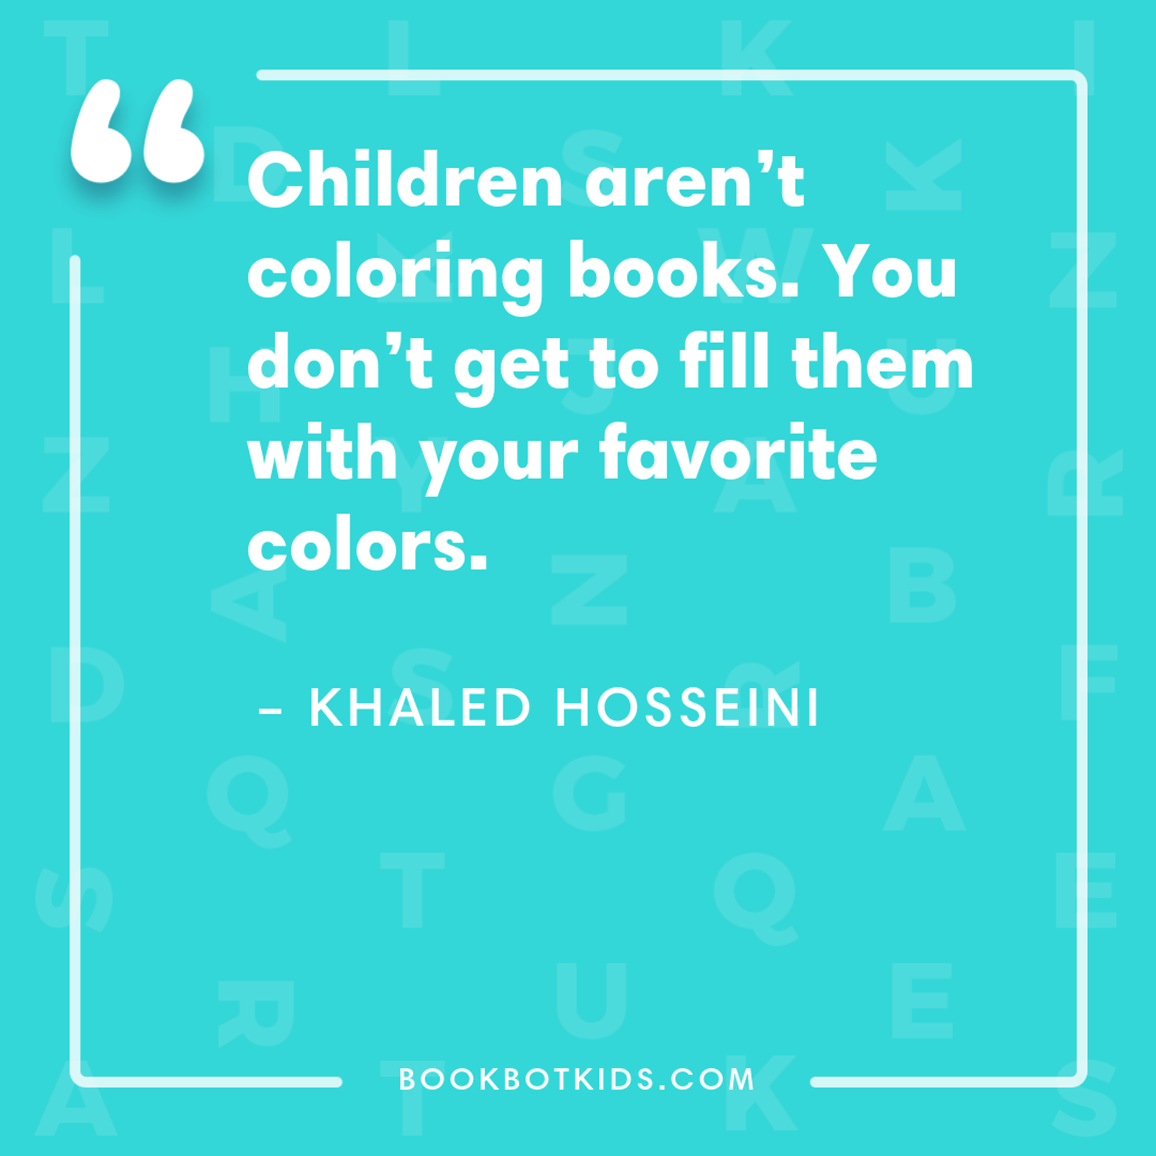 Children aren't coloring books. You don't get to fill them with your favorite colors. – Khaled Hosseini